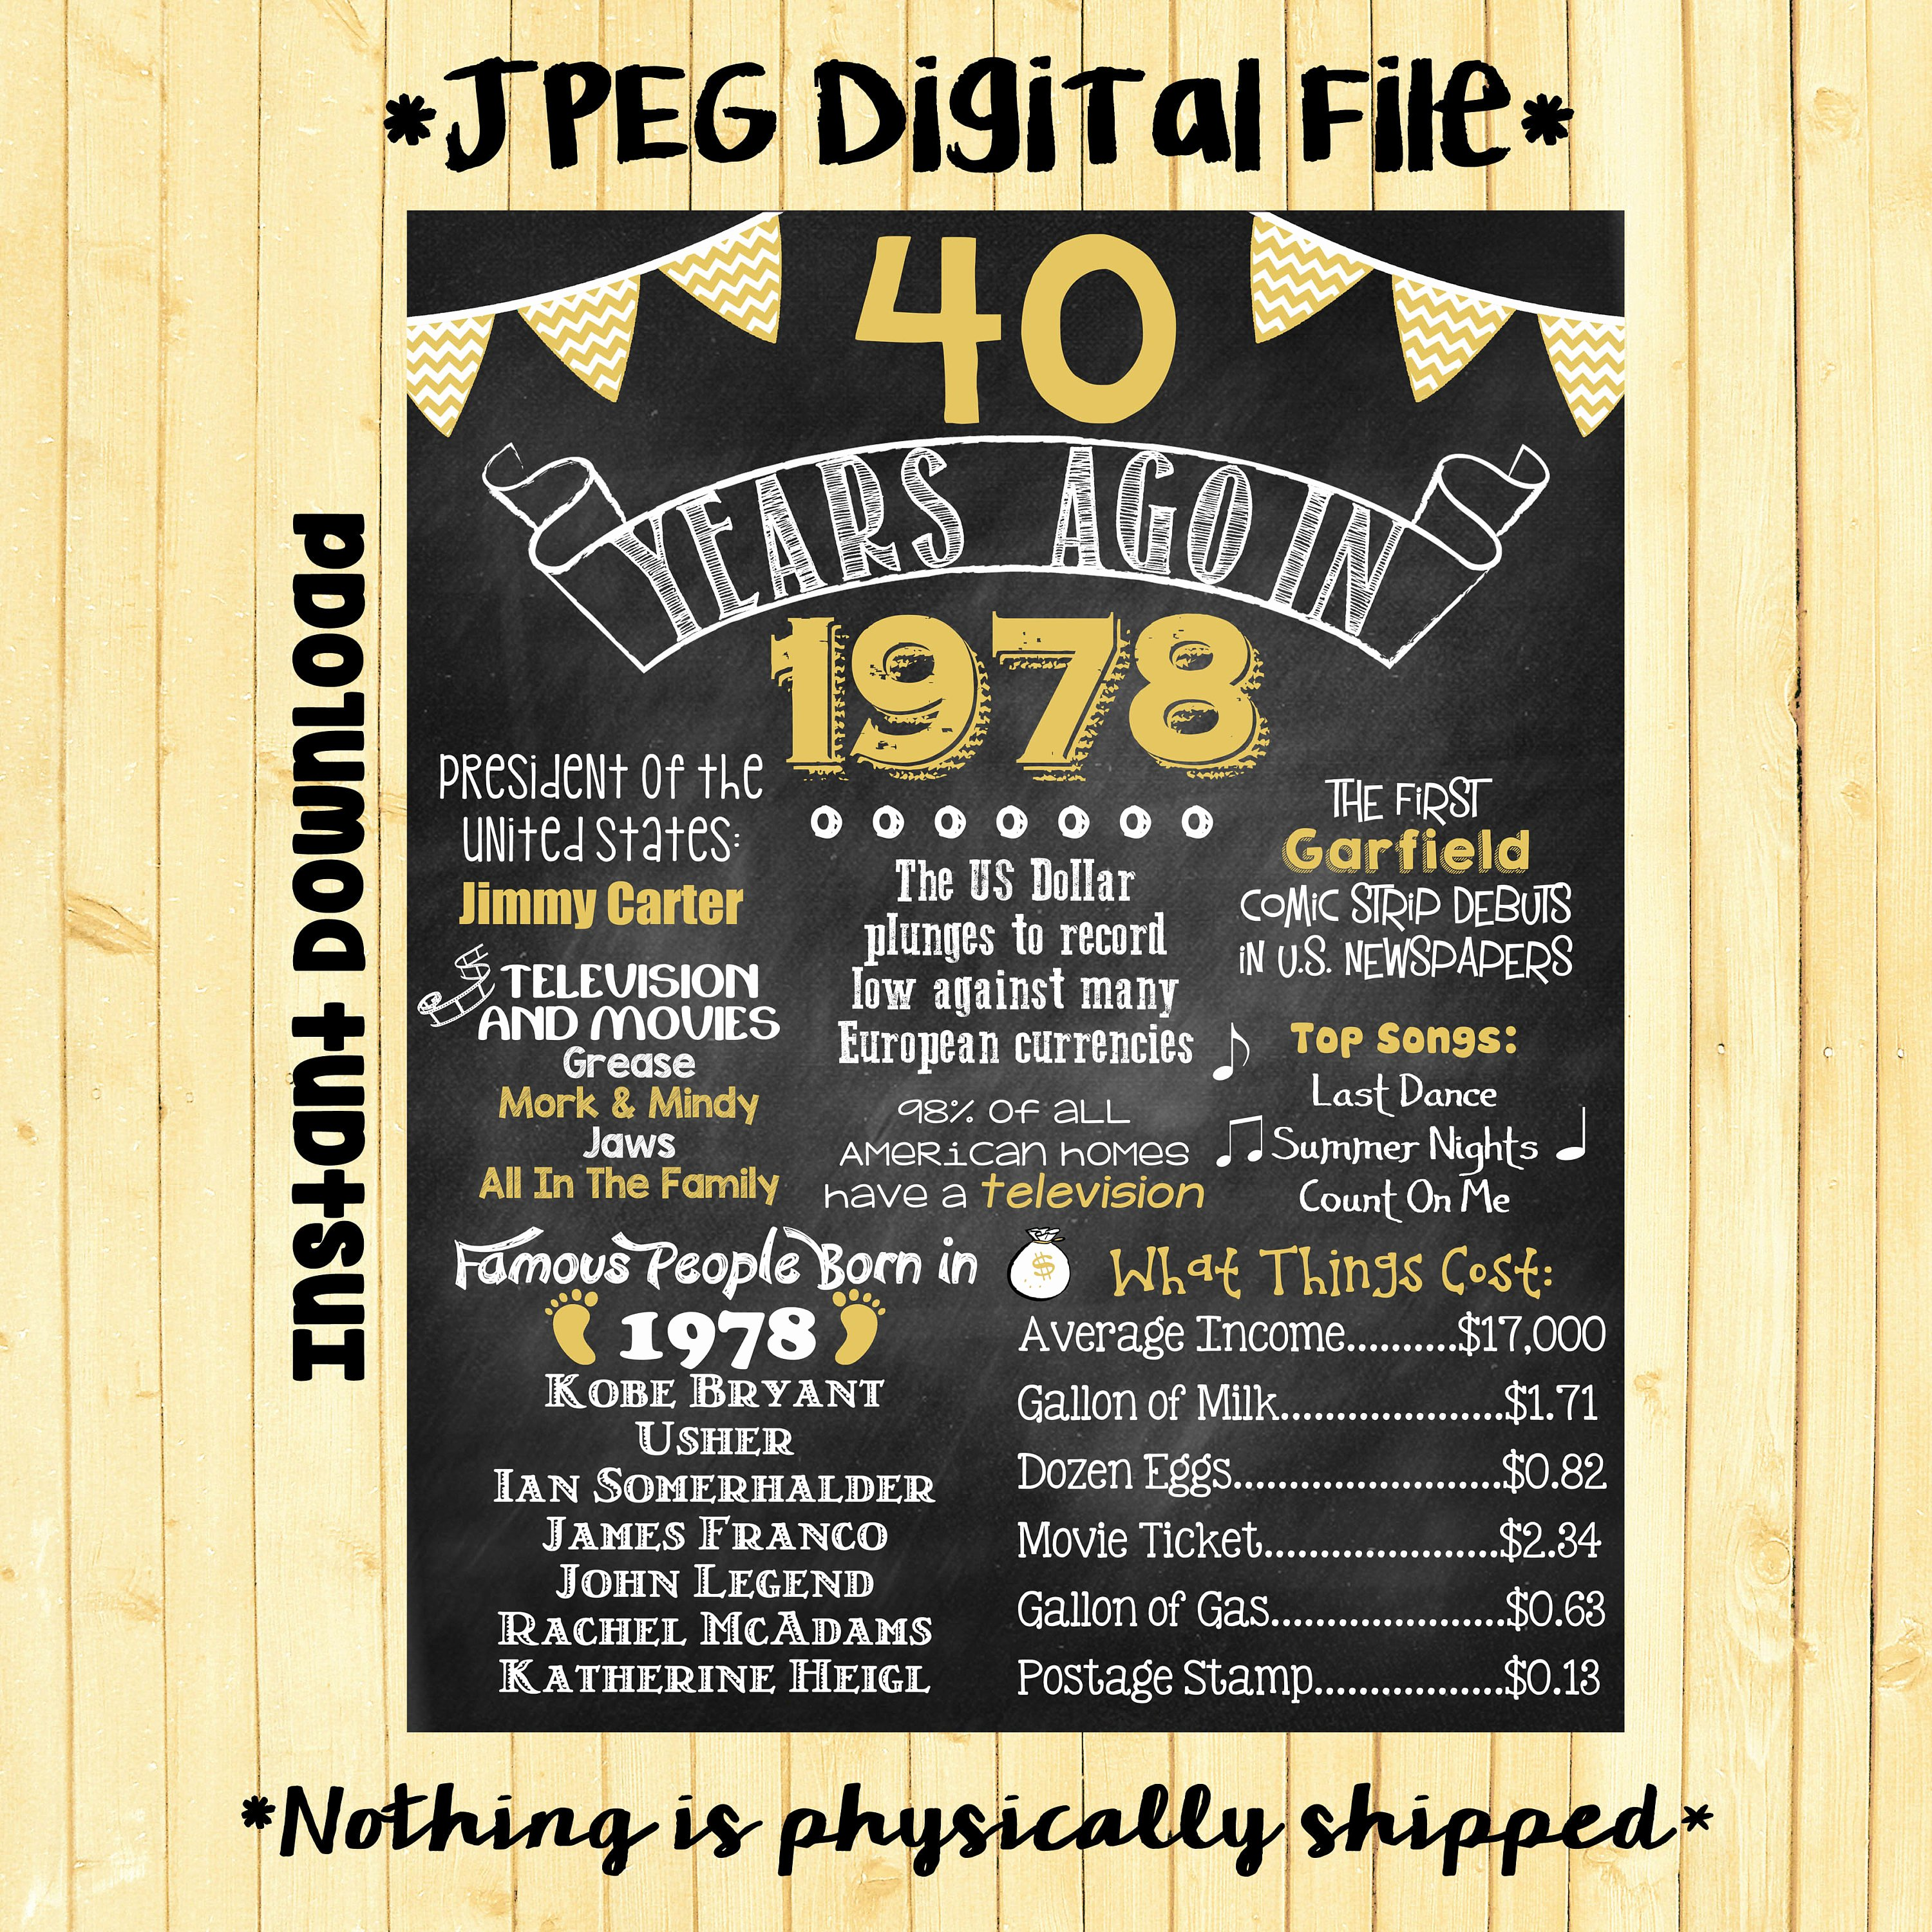 40th Birthday Poster Template Luxury Gold 40th Birthday Chalkboard 1978 Poster 40 Years Ago In 1978